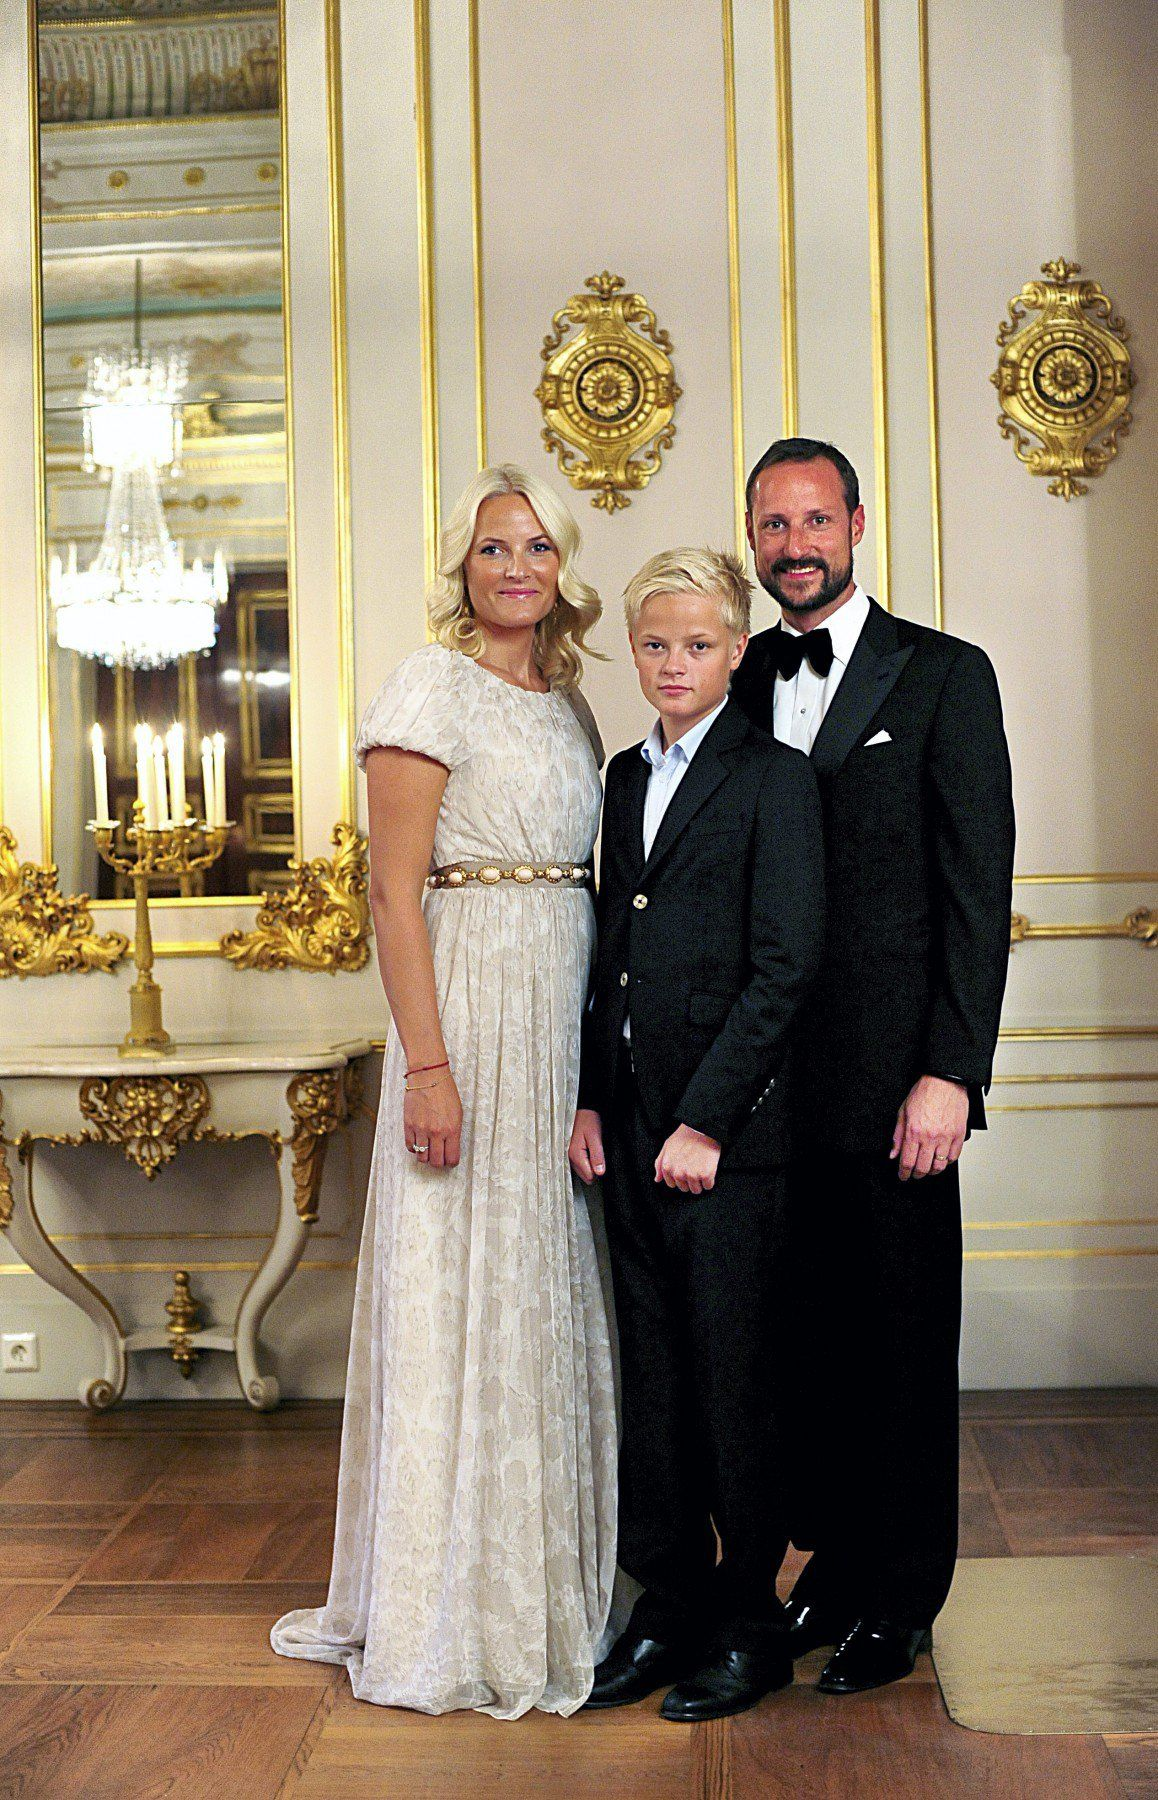 3ab02e76 Crown Princess Mette-Marit, Marius Høiby and Crown Prince Haakon at the  couple's 10th Wedding anniversary in 2011.